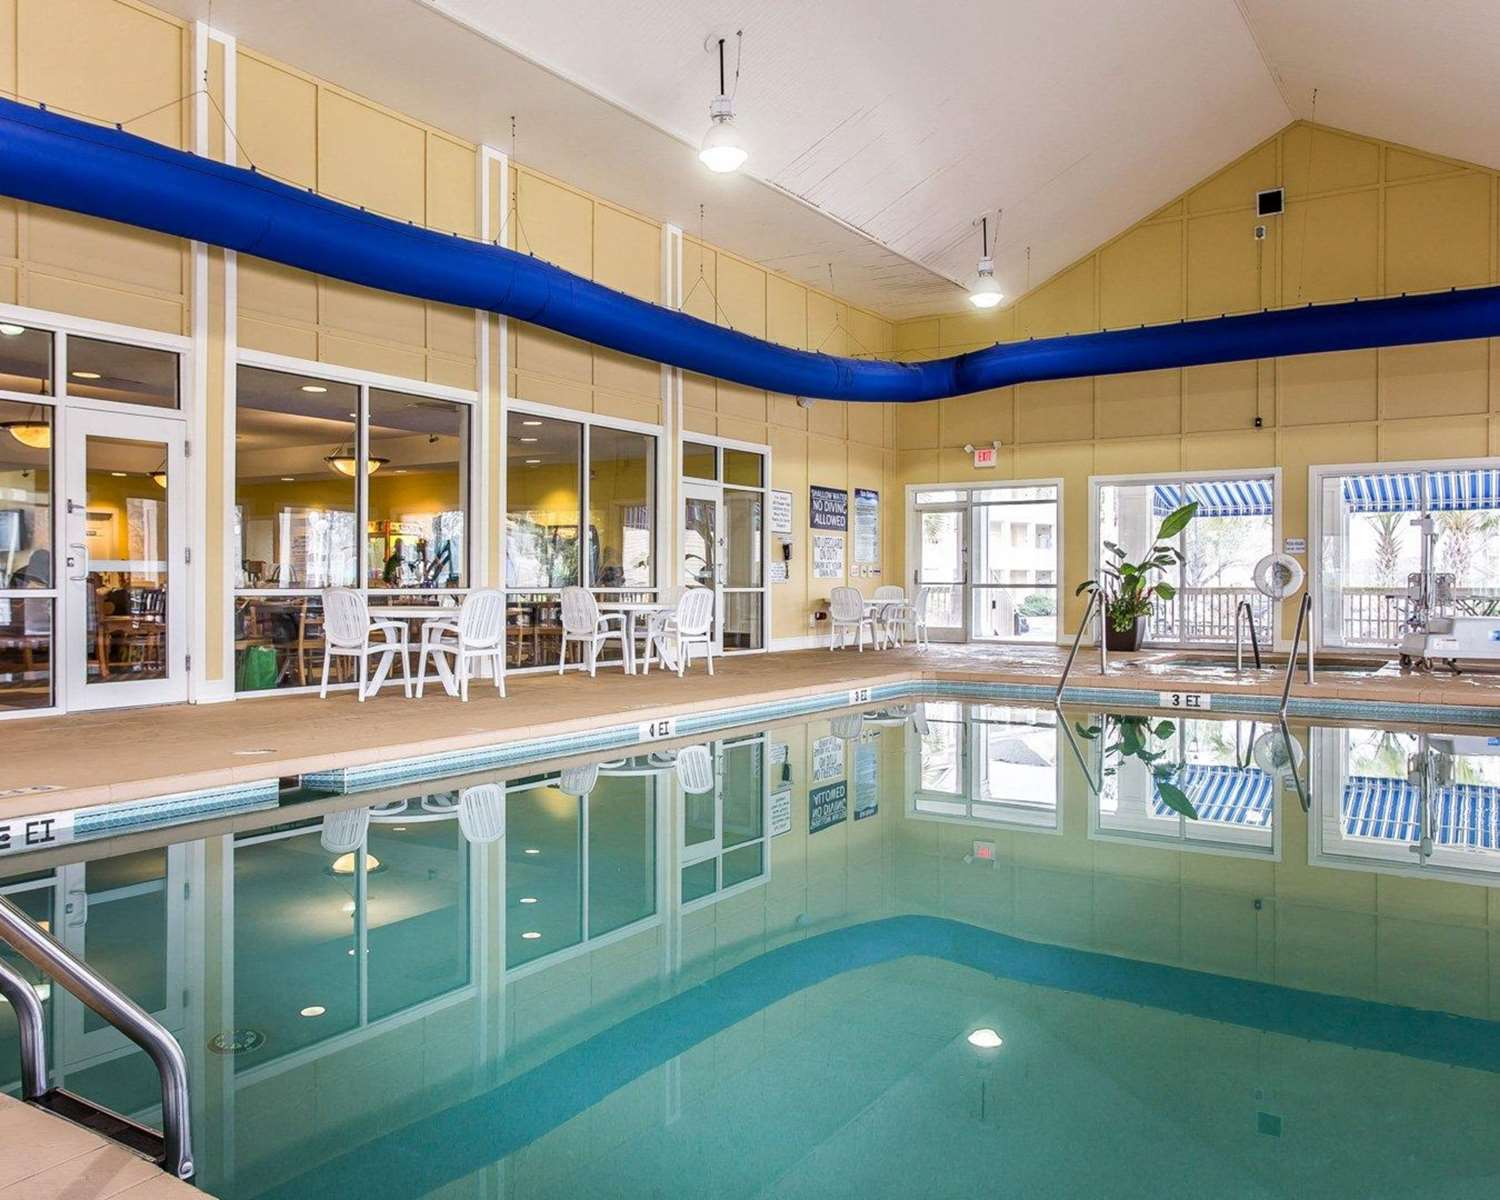 Pool - Bluegreen Vacations Harbor Lights Resort Myrtle Beach